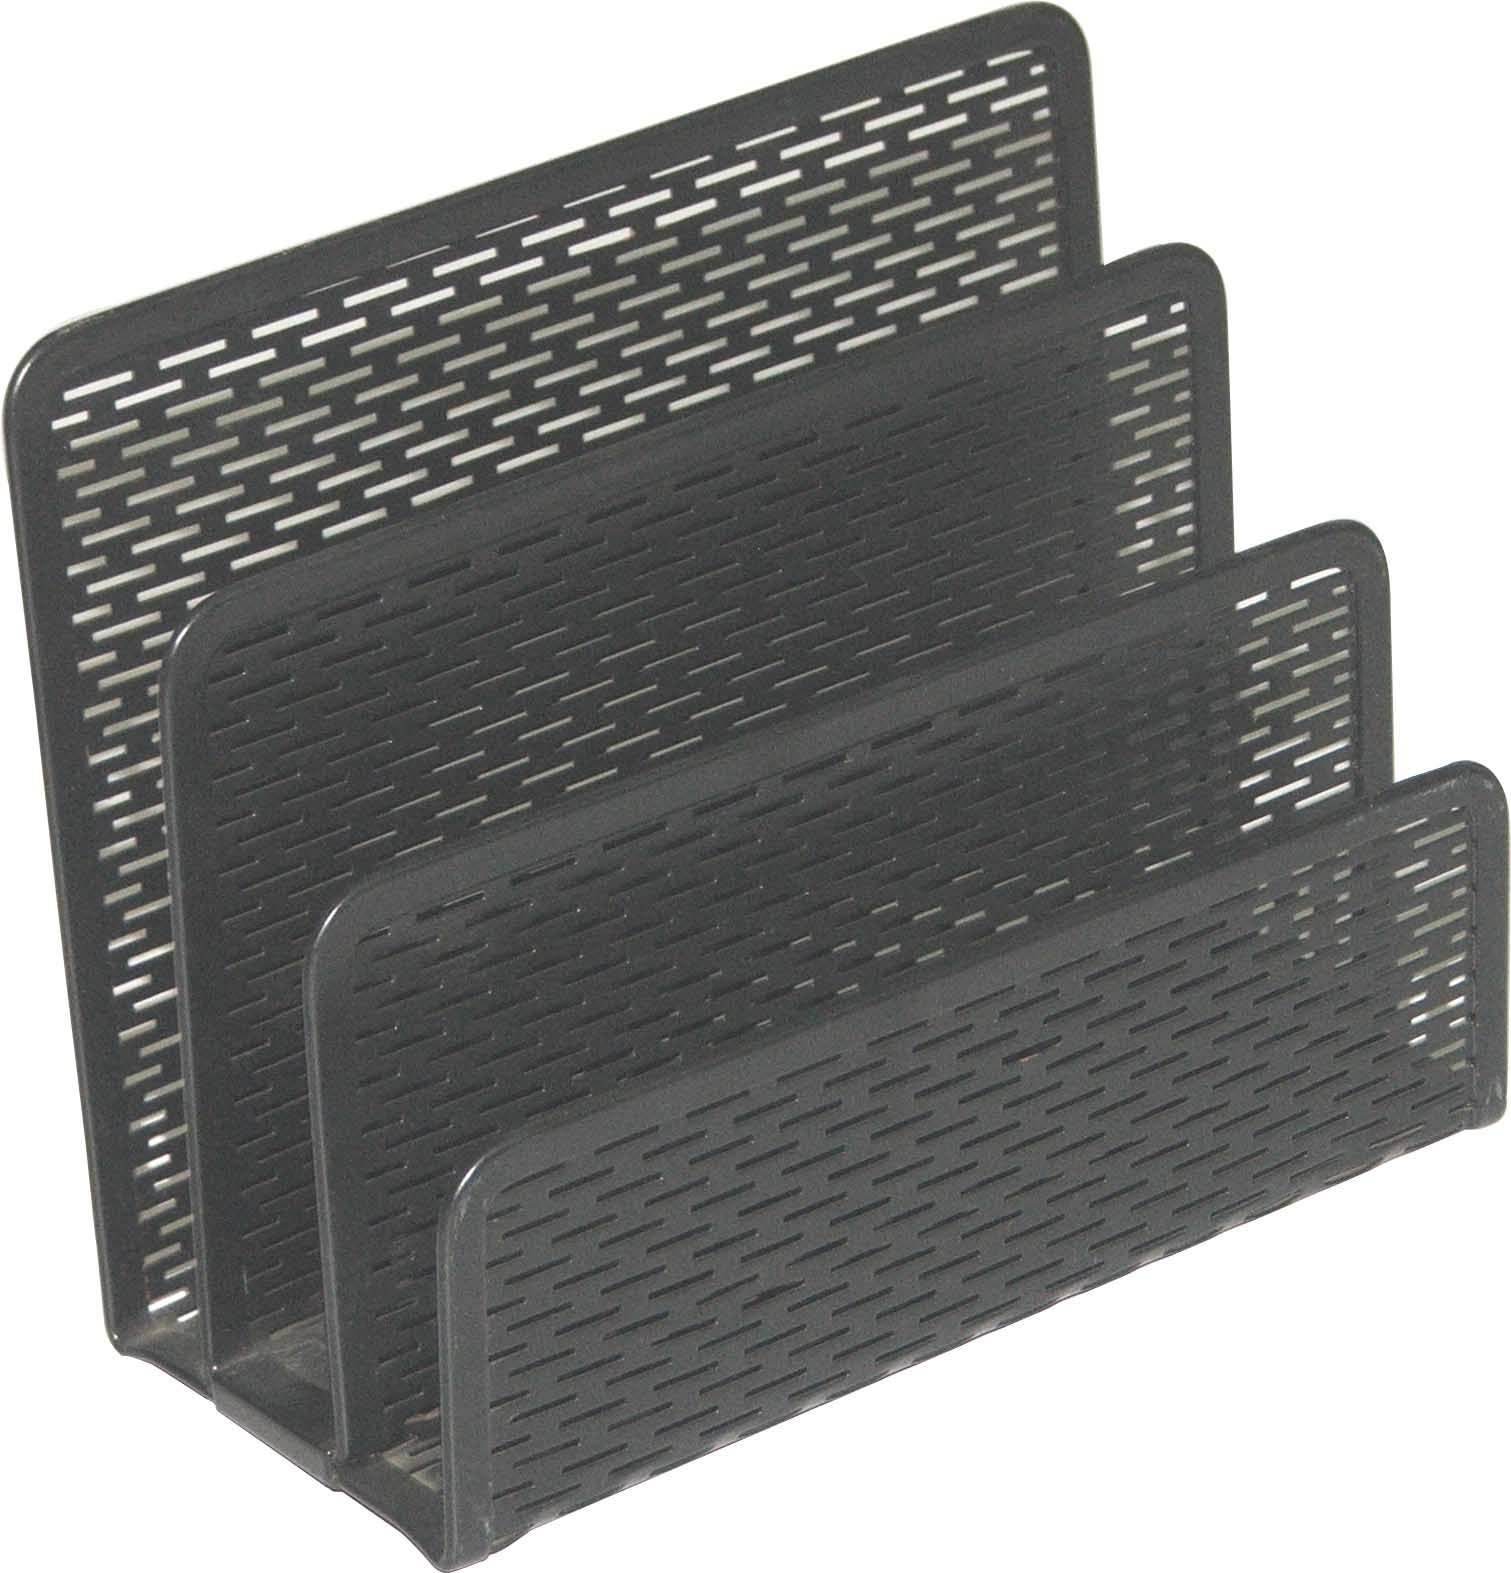 china office supply collection bookshelf letter shelf